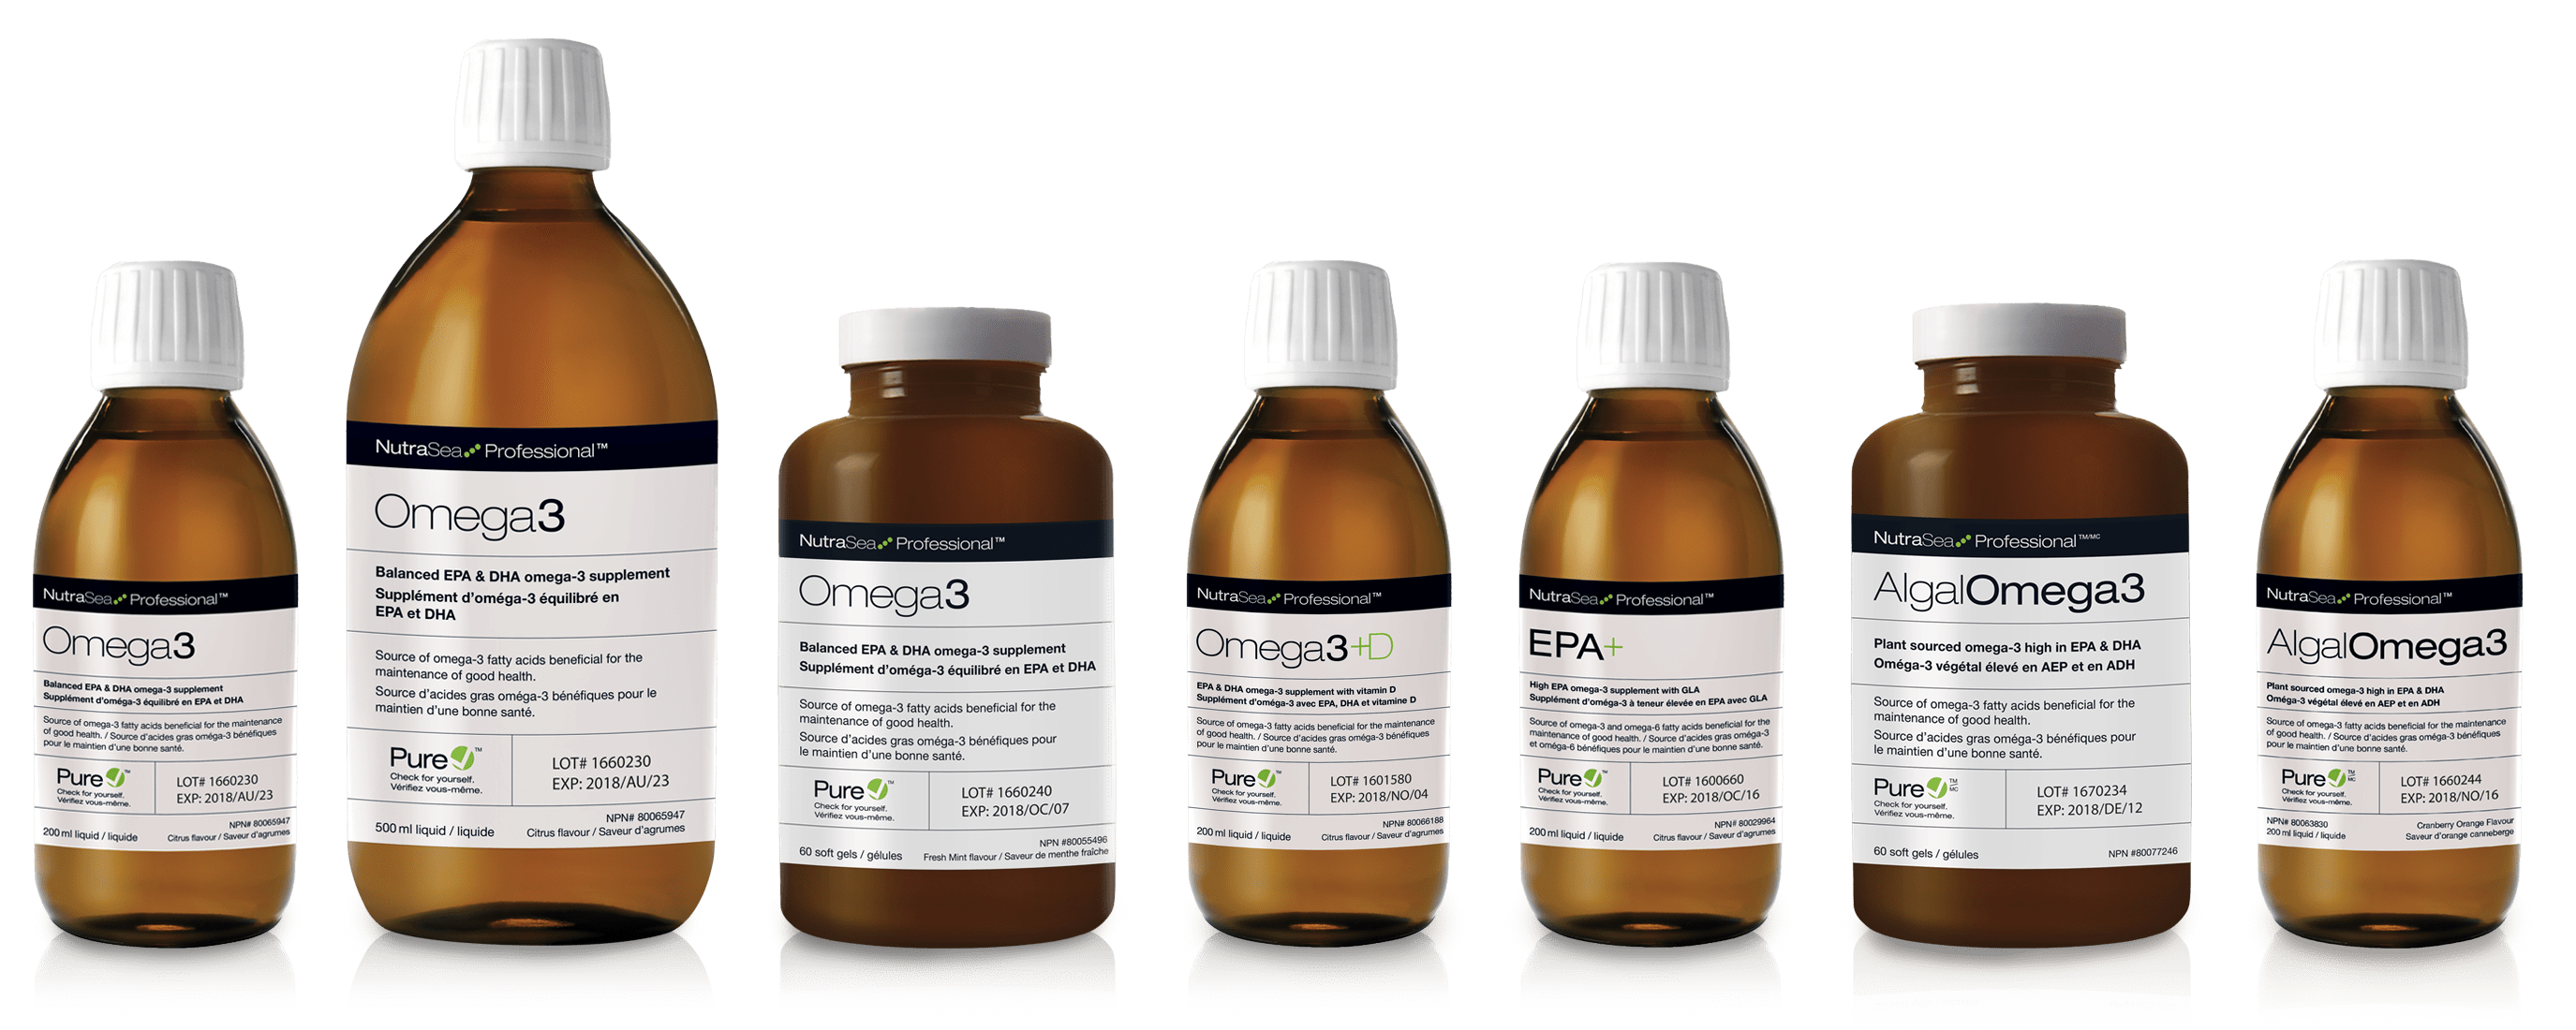 NutraSea Product Bottles